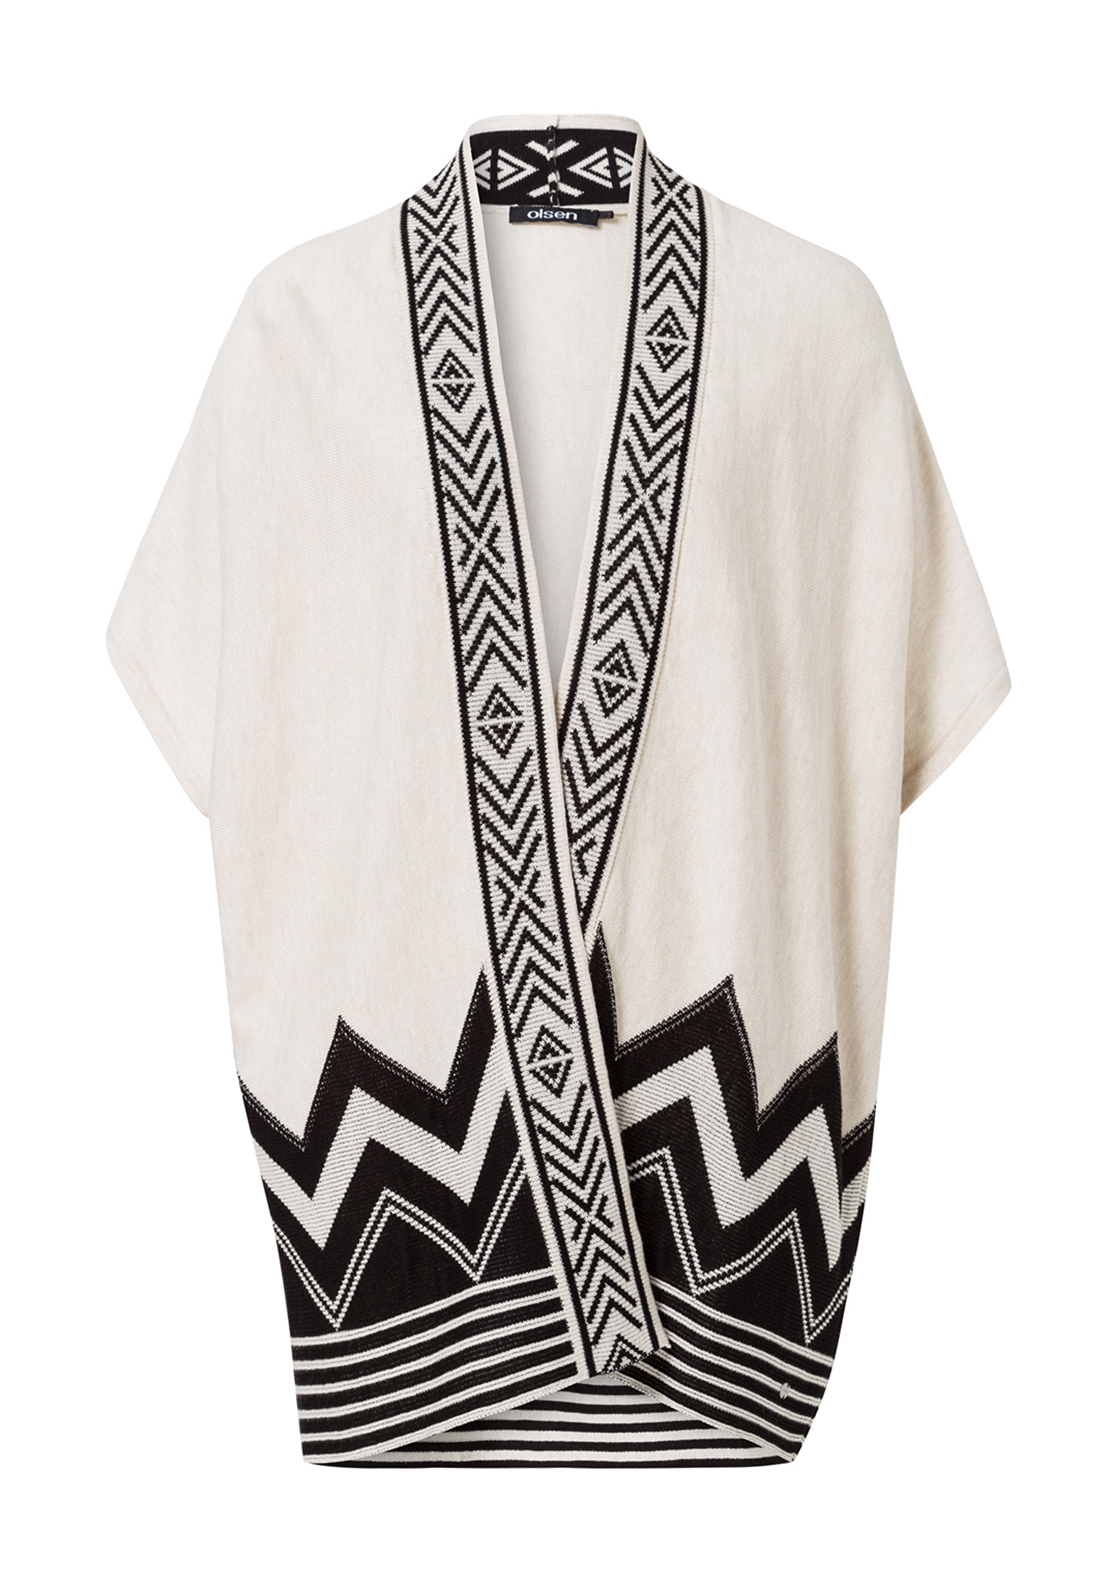 Olsen Chevron Print Short Sleeve Long Cardigan, Beige and Black